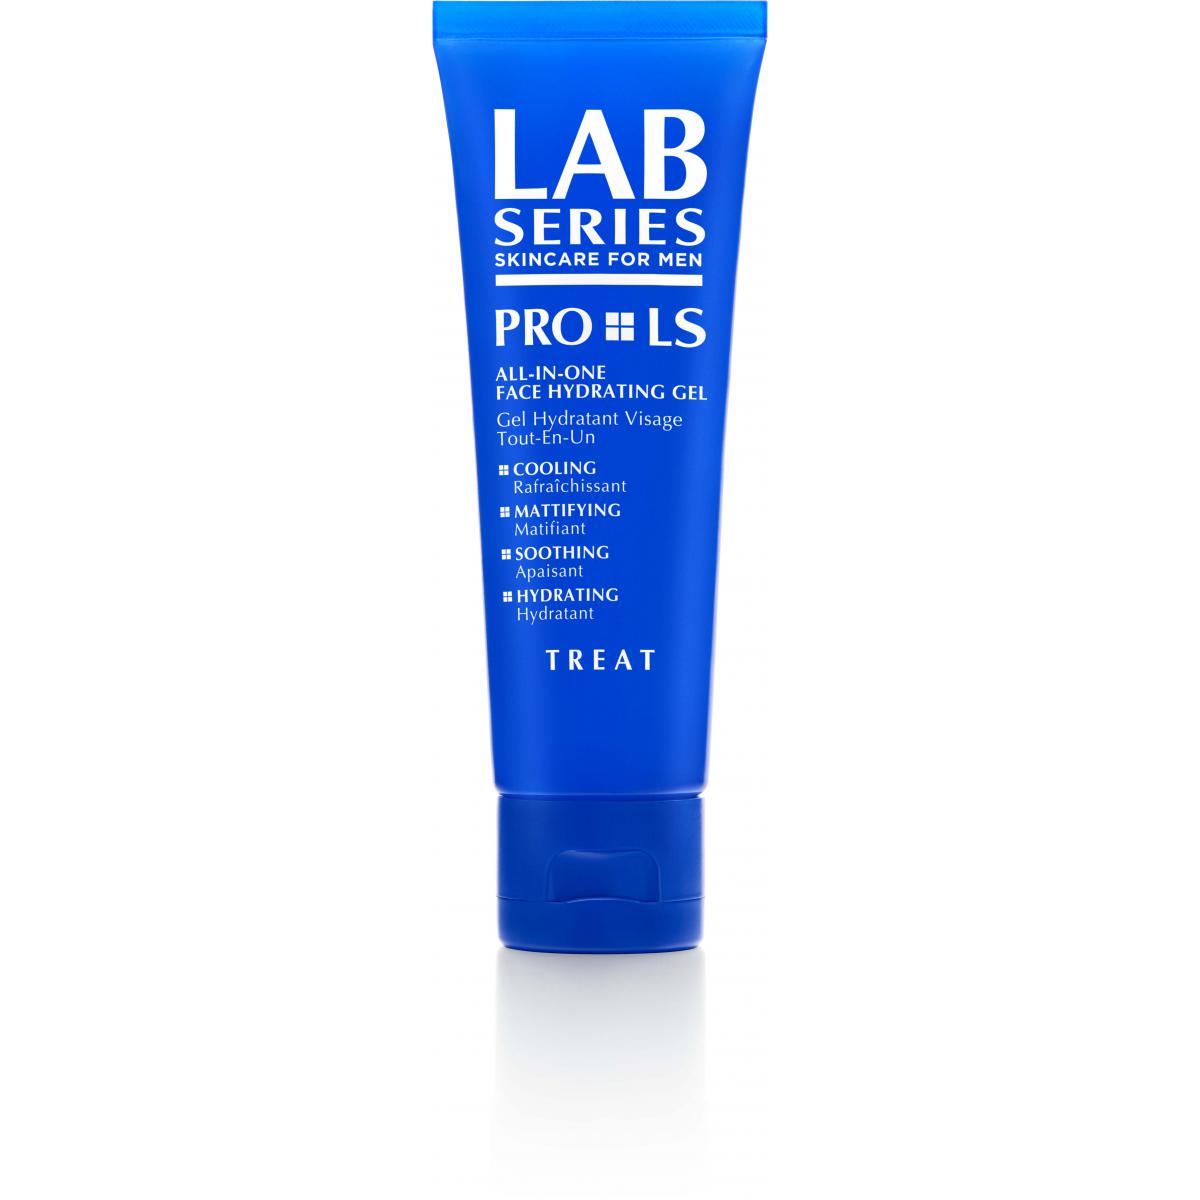 All In-One Face Hydrating Gel Lab Series